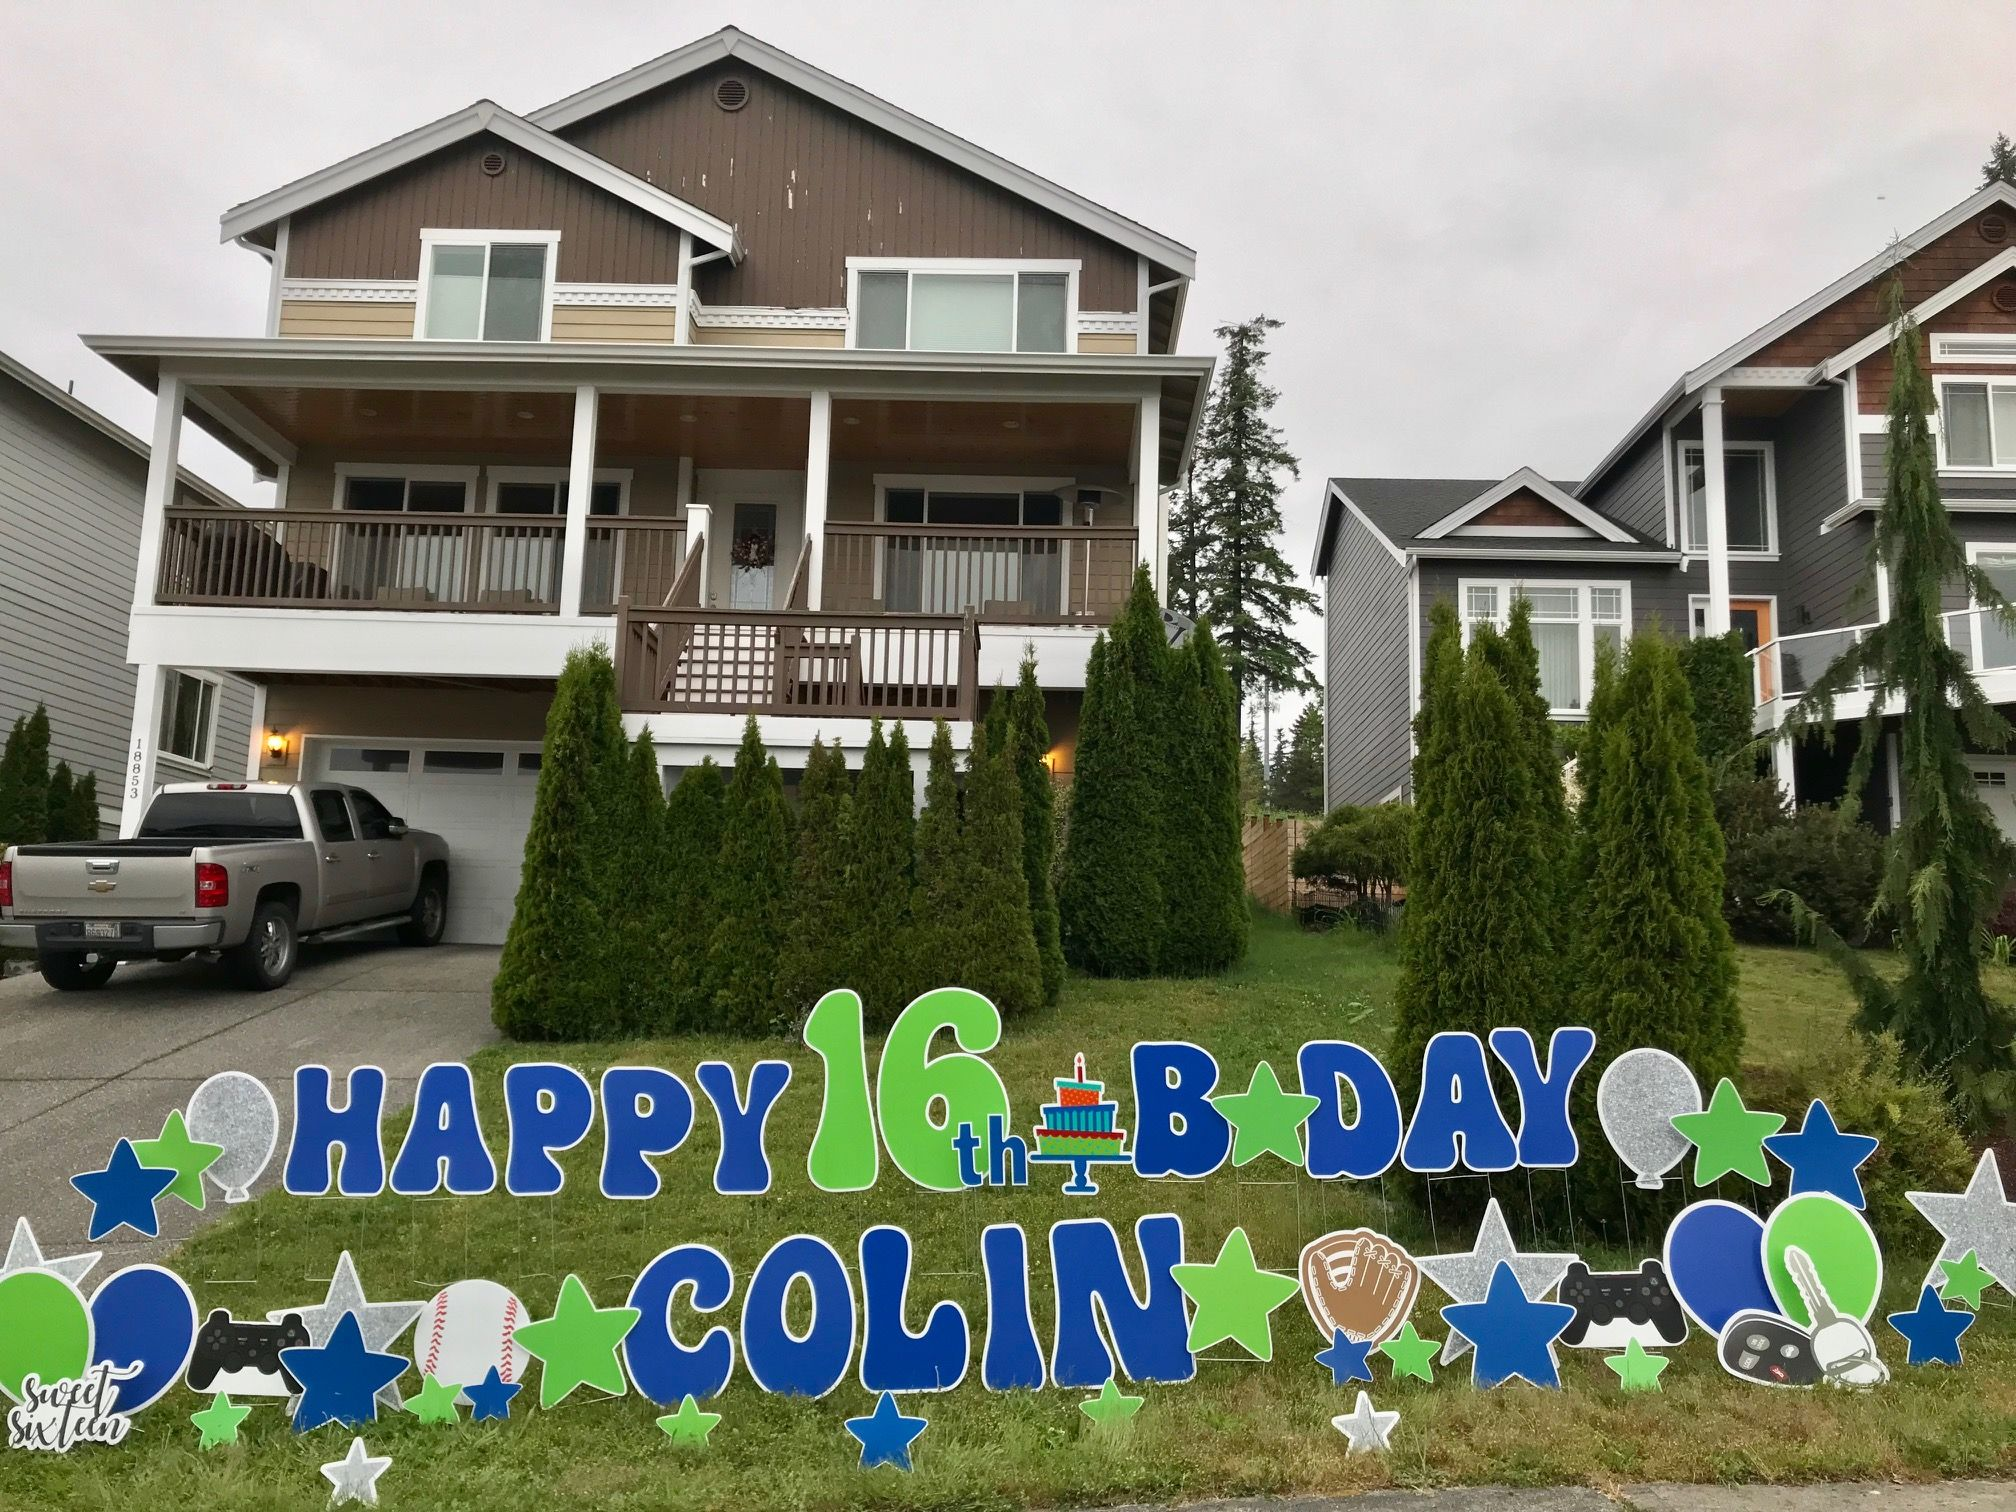 Happy Sweet 16 Birthday Yard Signs With Fun Yard Art Celebrate Big With A Yard Card Fun Birthday Signs For All O Birthday Yard Signs Birthday Sign Yard Cards